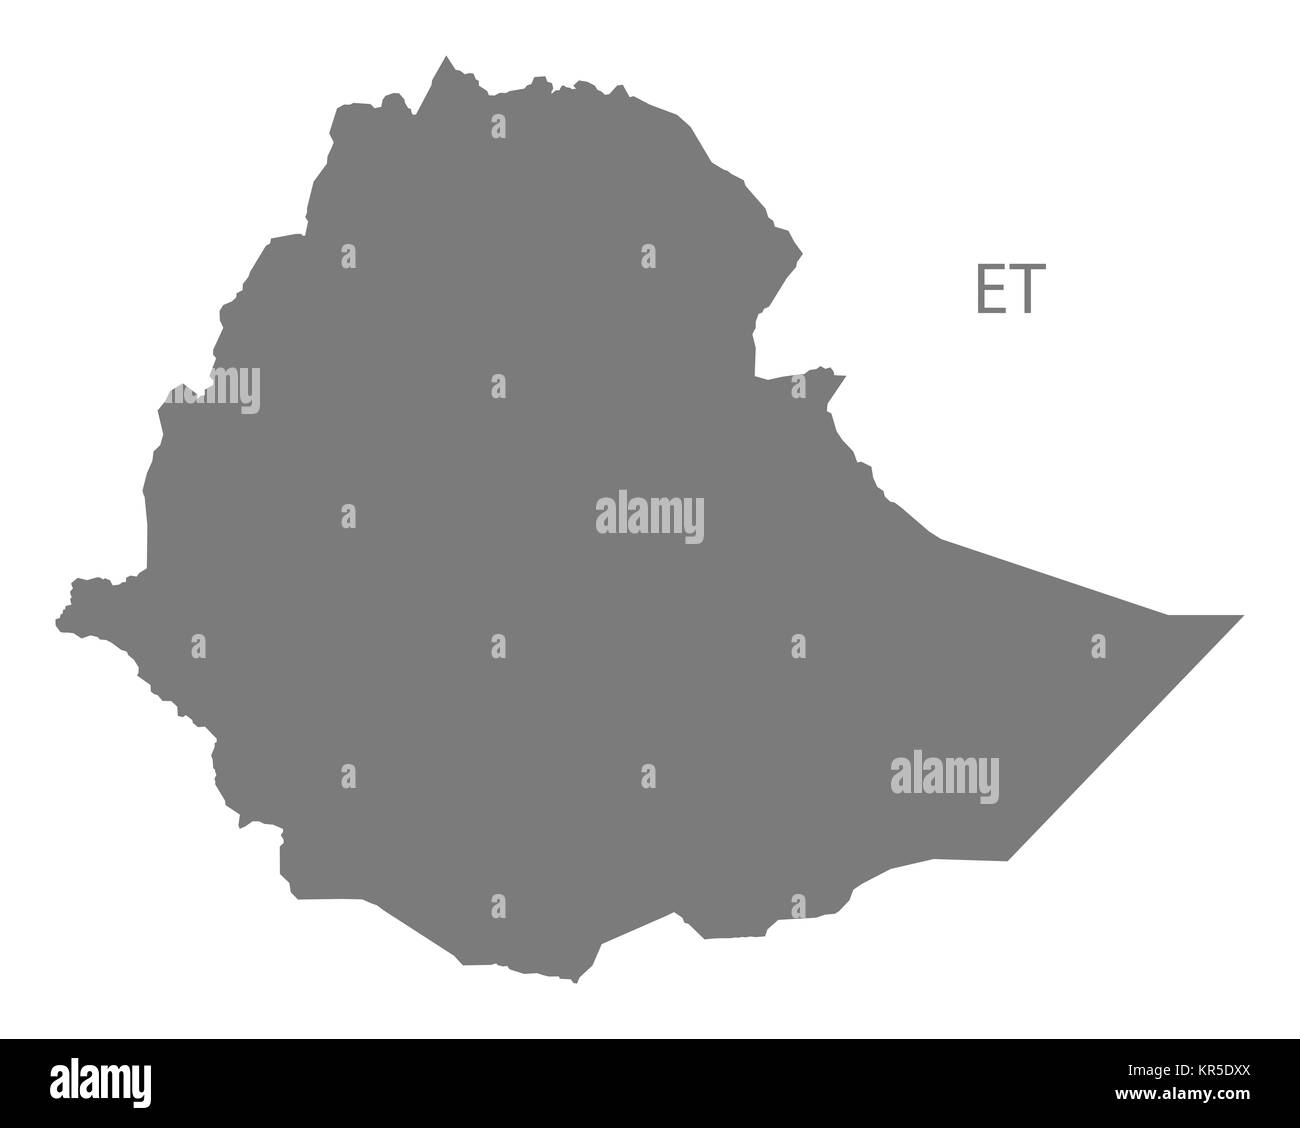 World map ethiopia cut out stock images pictures alamy ethiopia map grey stock image gumiabroncs Choice Image